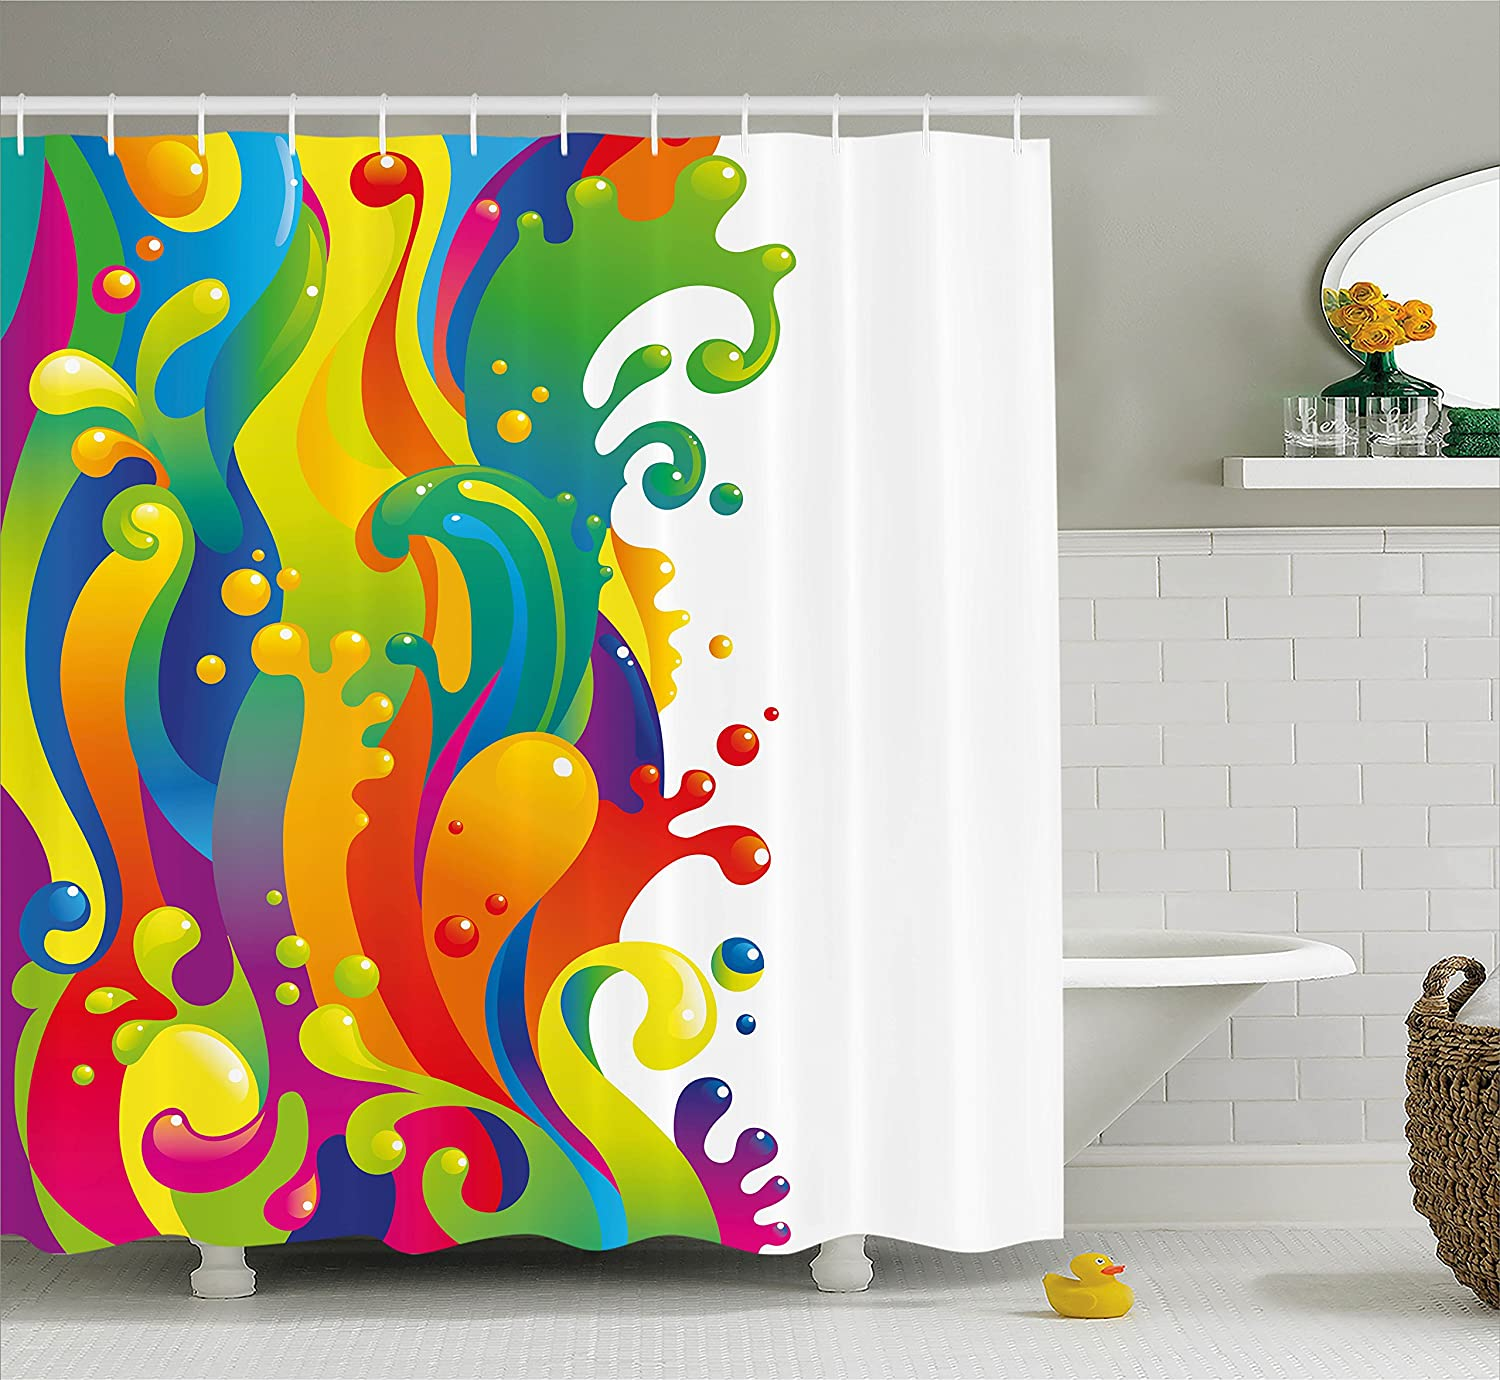 Ambesonne Psychedelic Shower Curtain, Digital Made Fluid Rainbow Color on